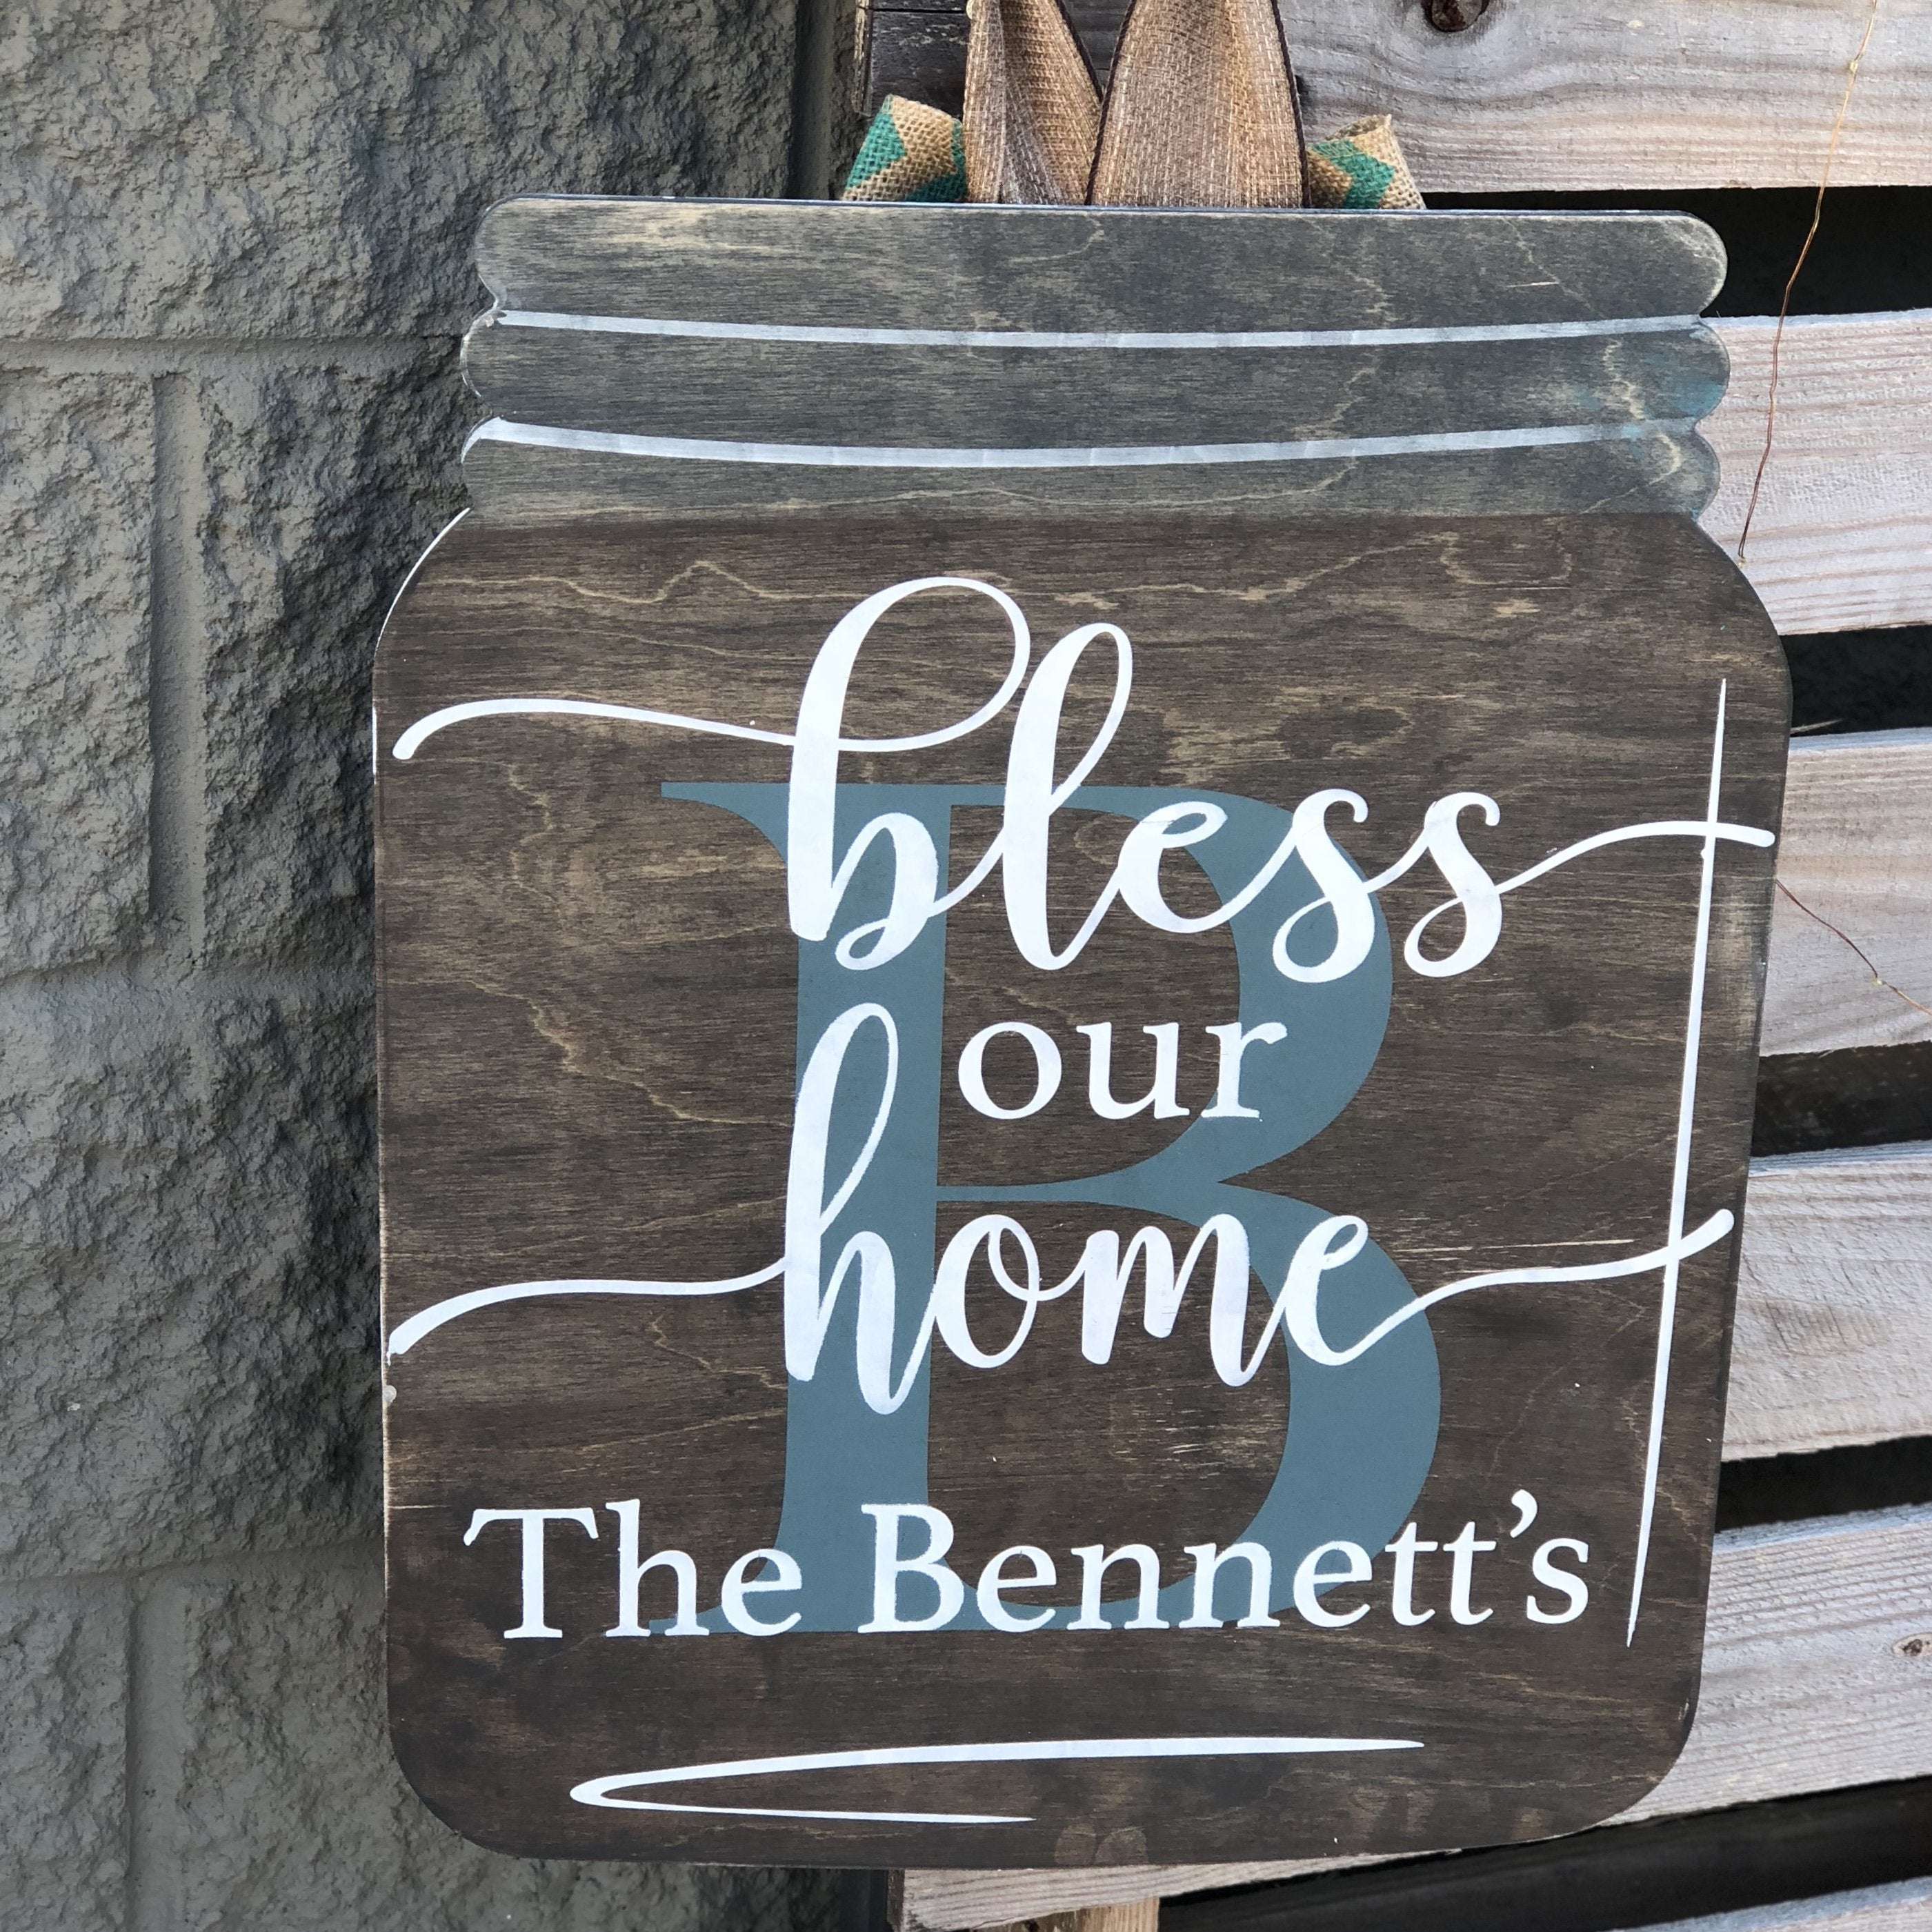 BLESS OUR HOME PERSONALIZED MASON JAR: DOOR HANGER DESIGN